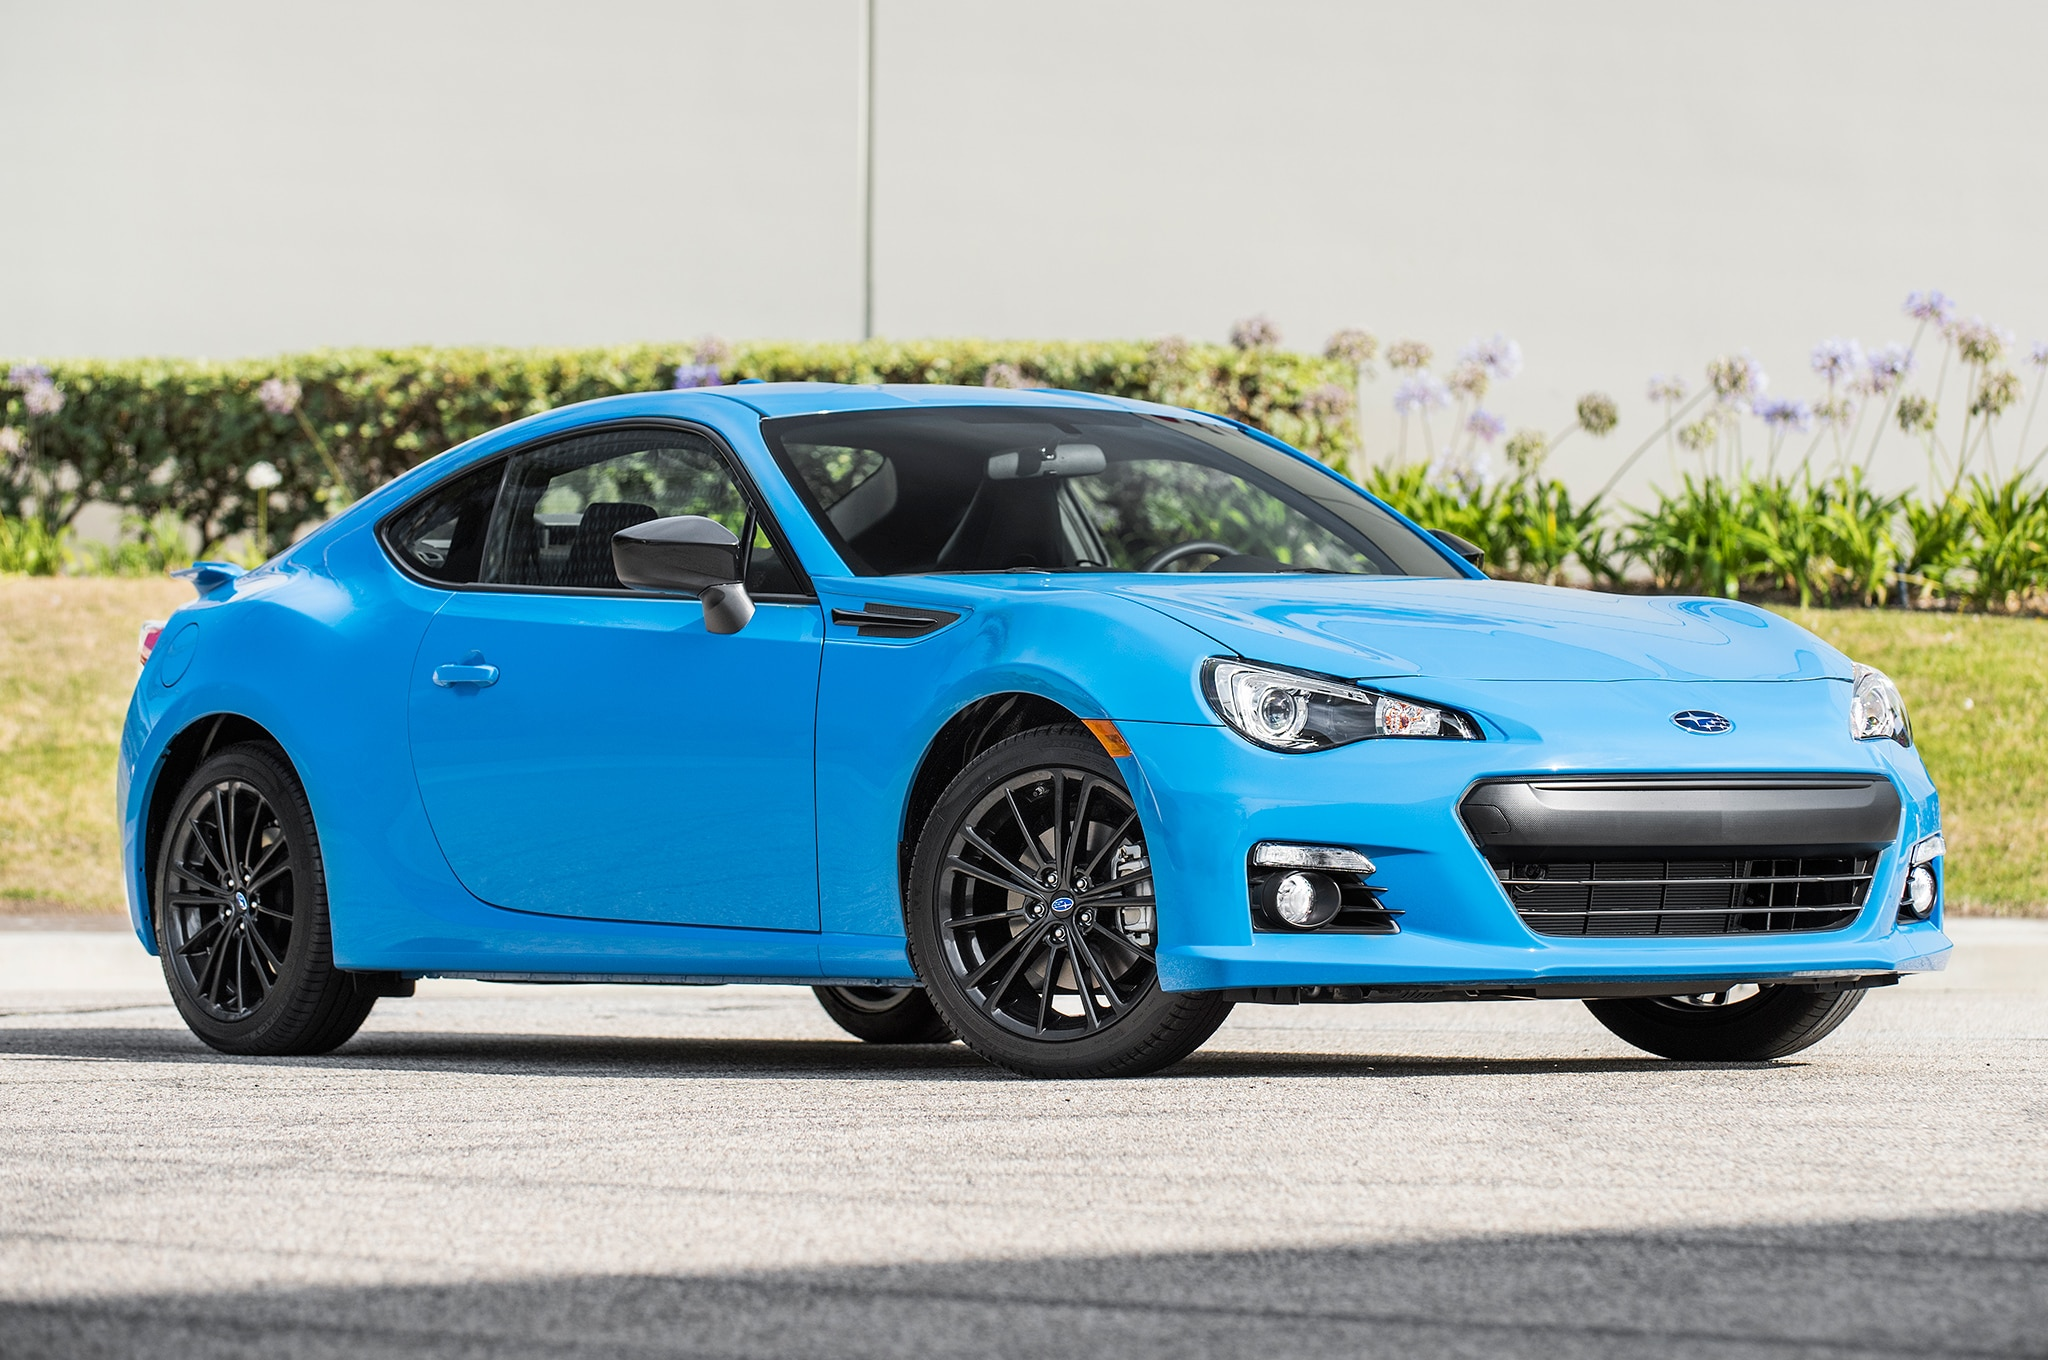 Subaru Wrx Sti For Sale >> 2016 Subaru BRZ, WRX STI Add HyperBlue Special Edition